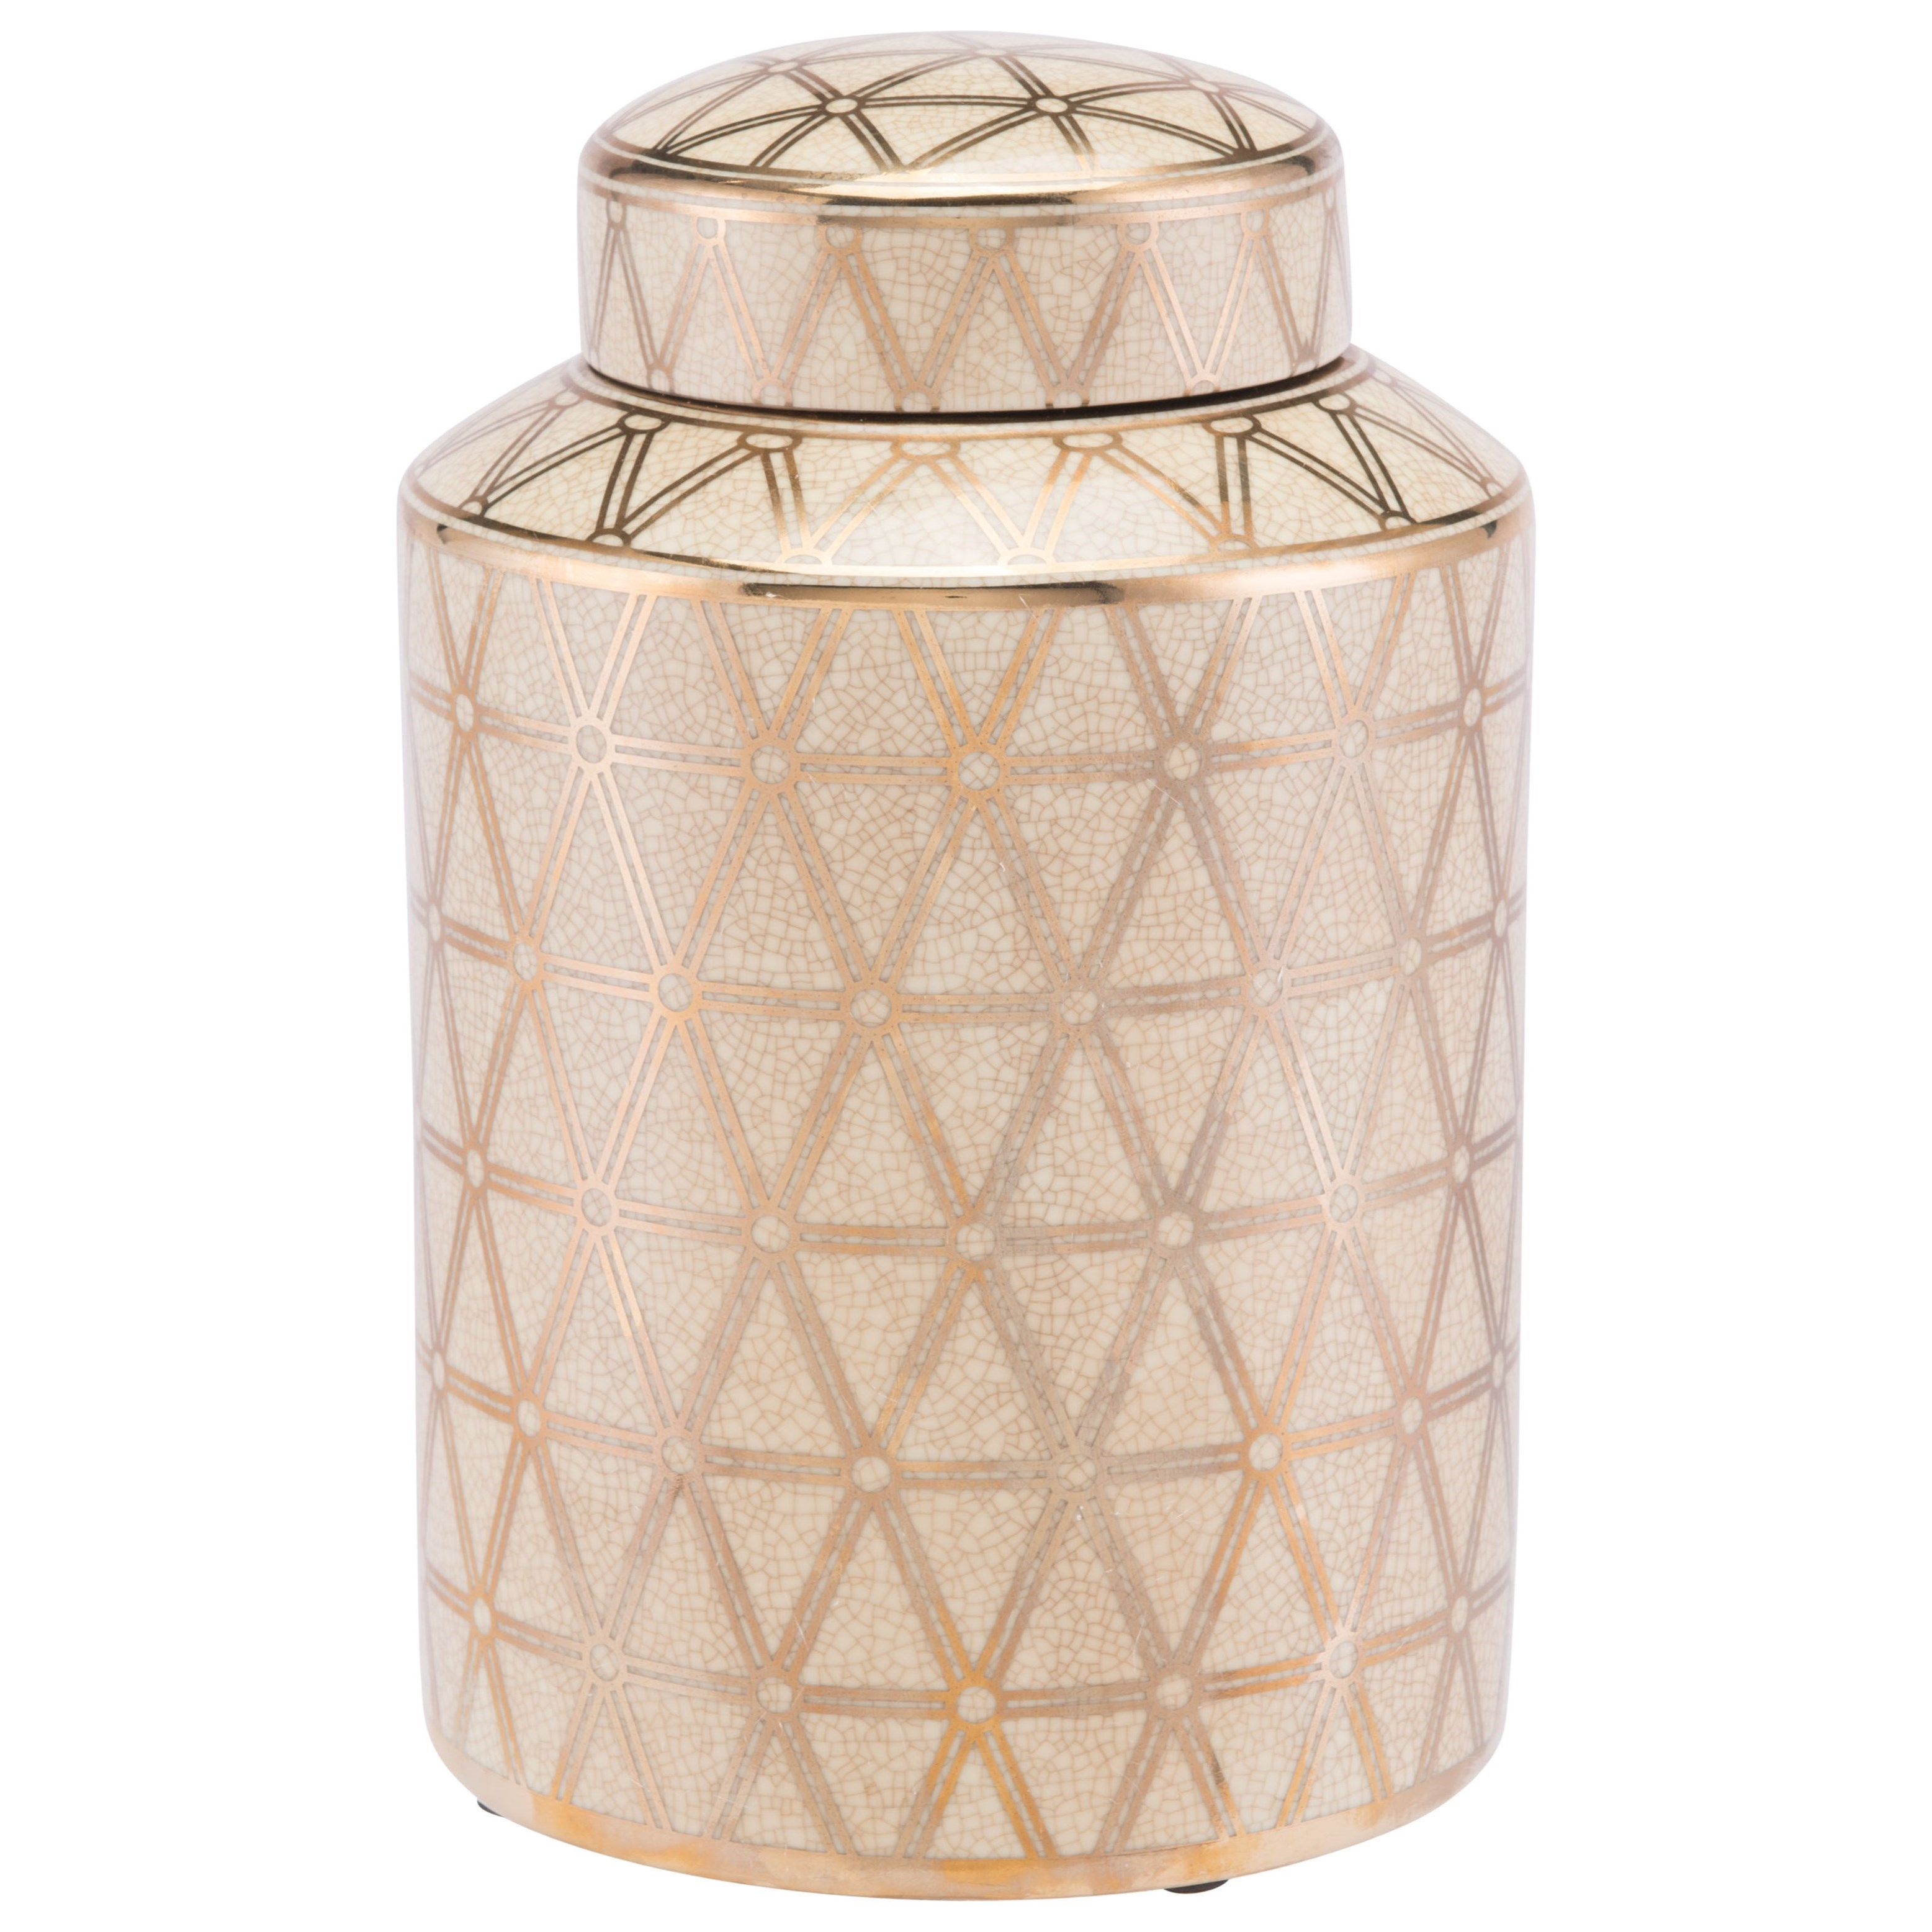 Bottles and Jars Link Covered Jar Small by Zuo at Nassau Furniture and Mattress